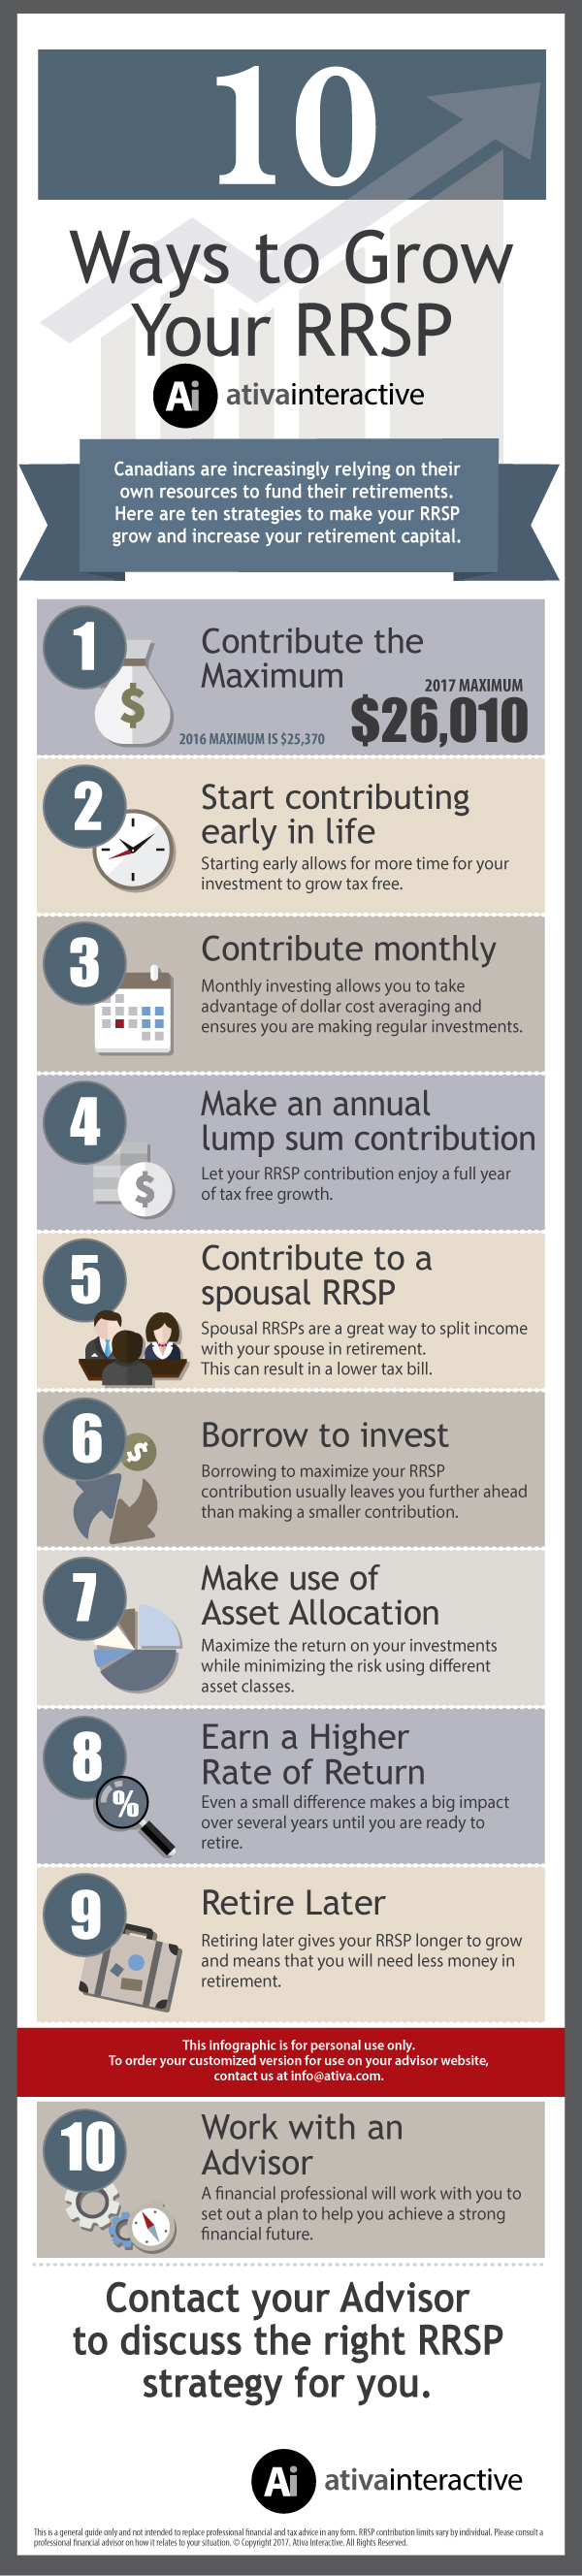 10 Ways to Grow Your RRSP Infographic